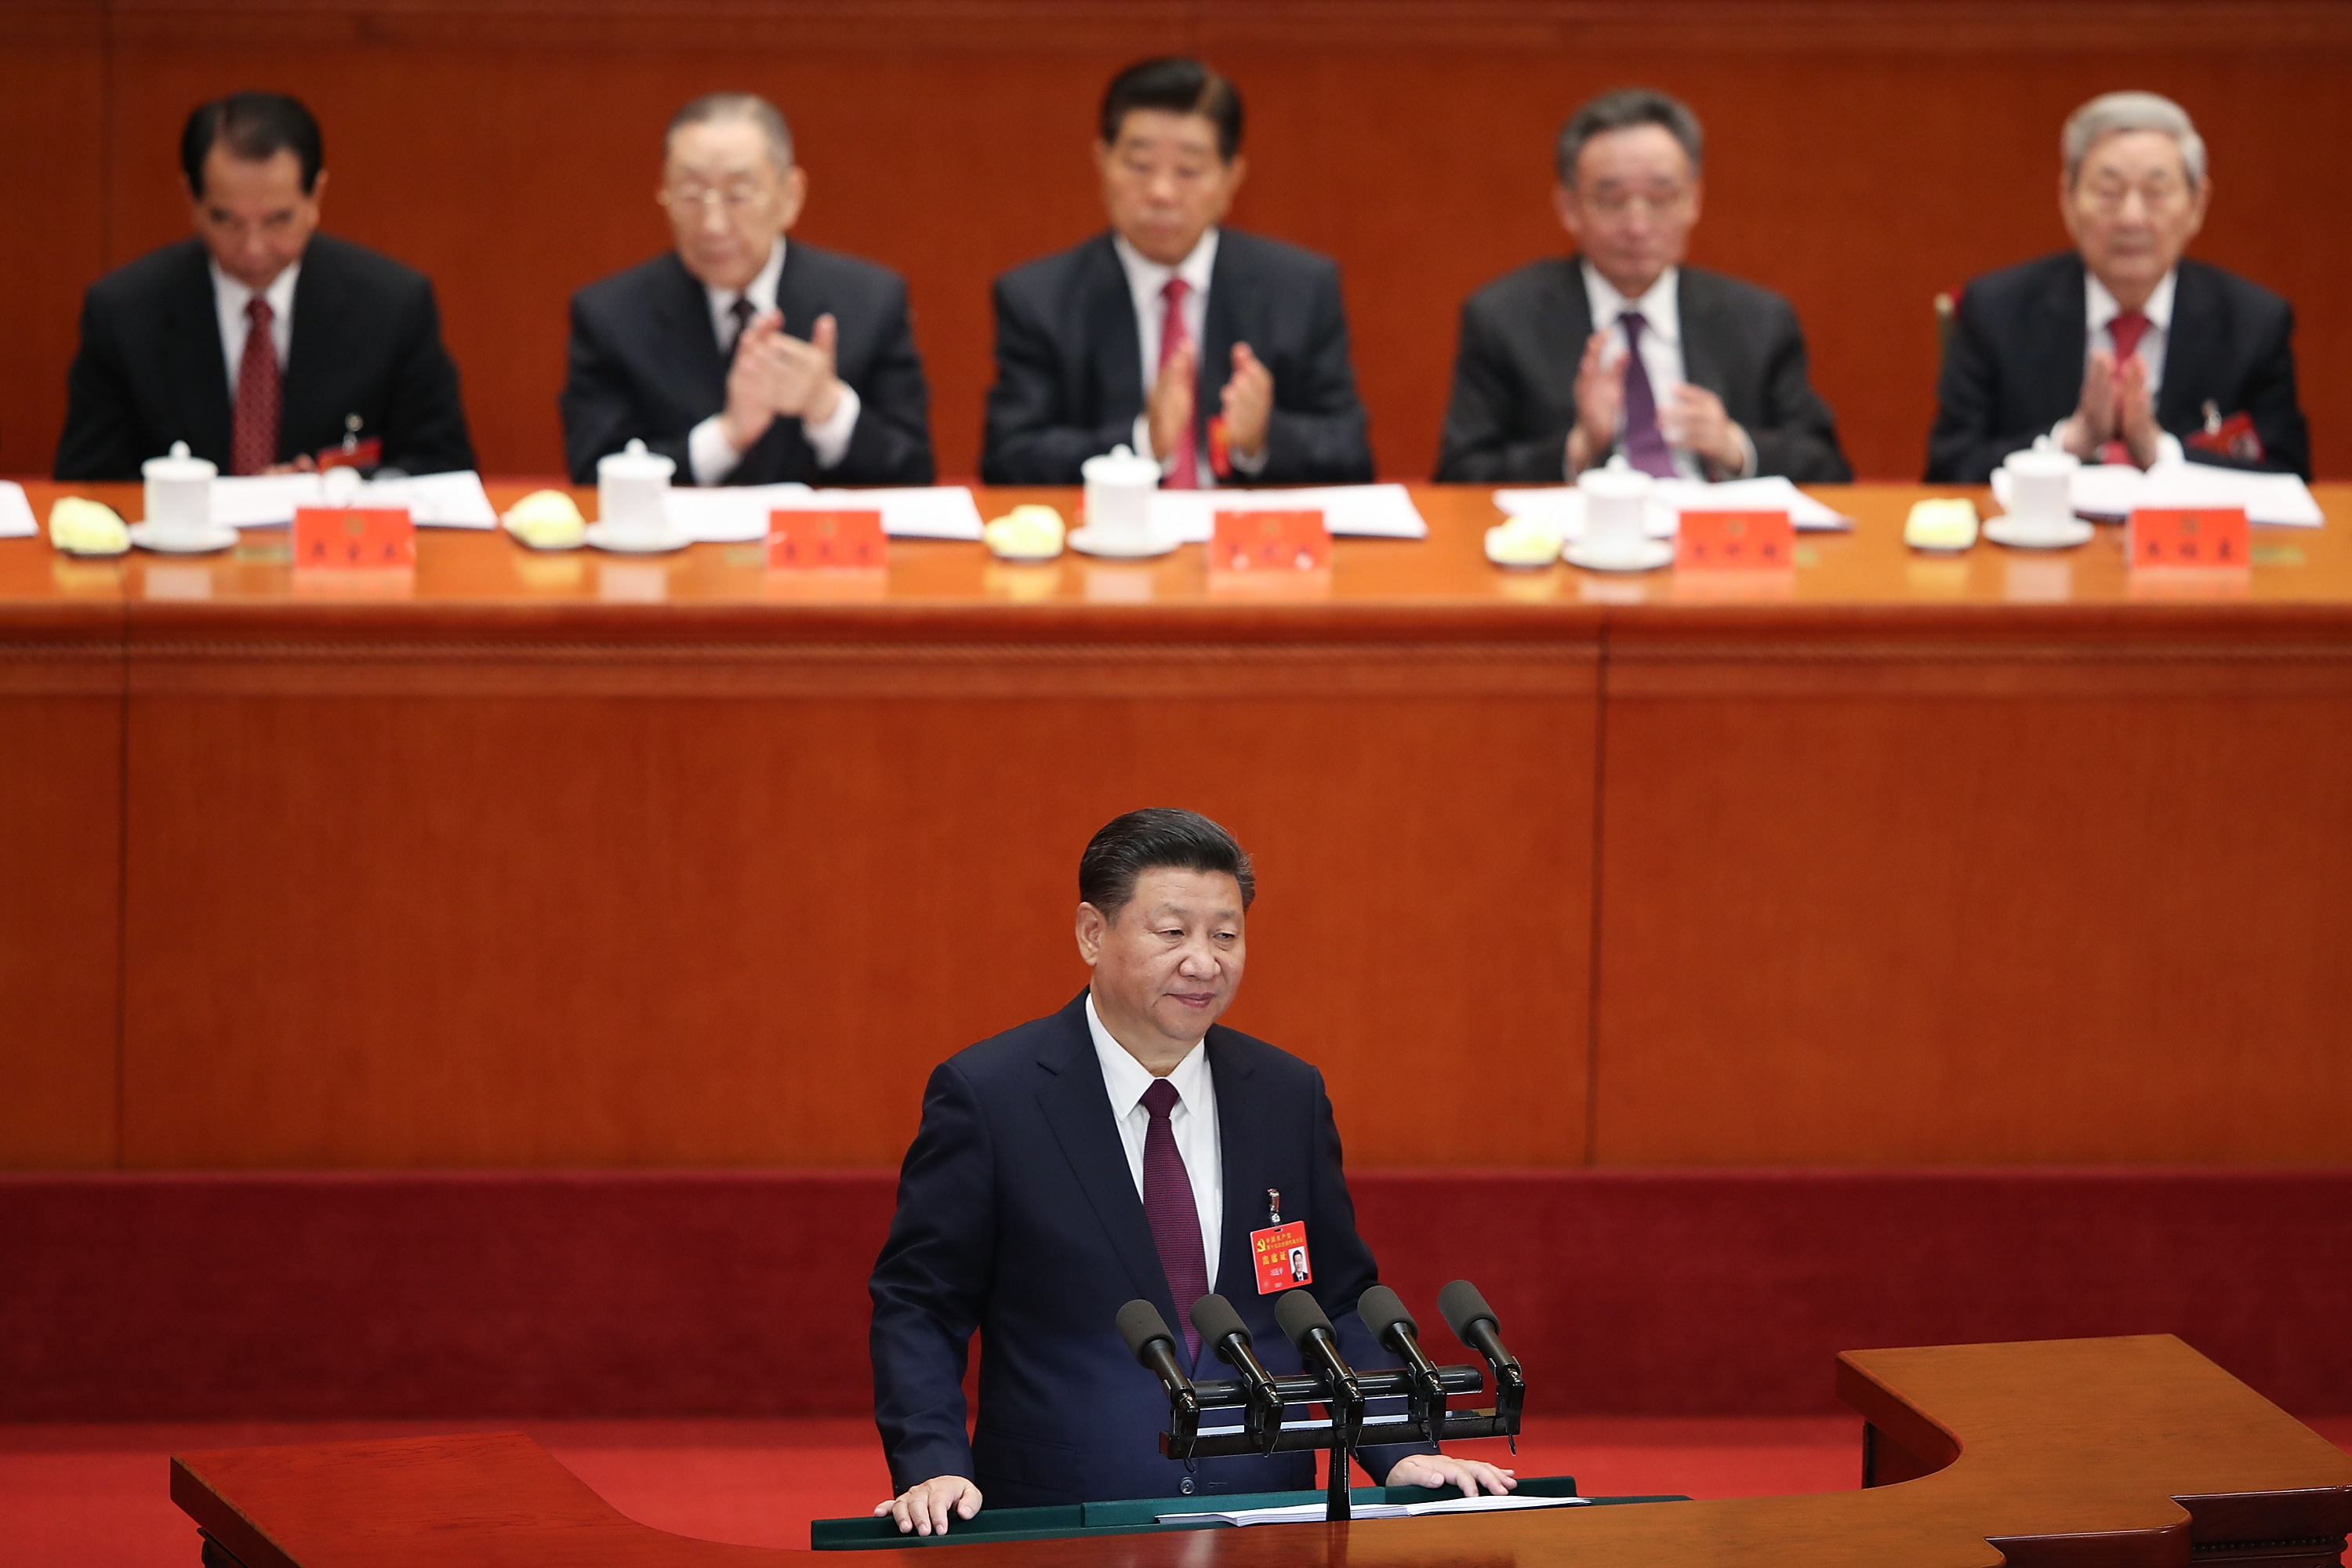 Chinese president Xi Jinping delivers a speech during the opening session of the 19th Communist Party Congress held at the Great Hall of the People on October 18, 2017 in Beijing, China.